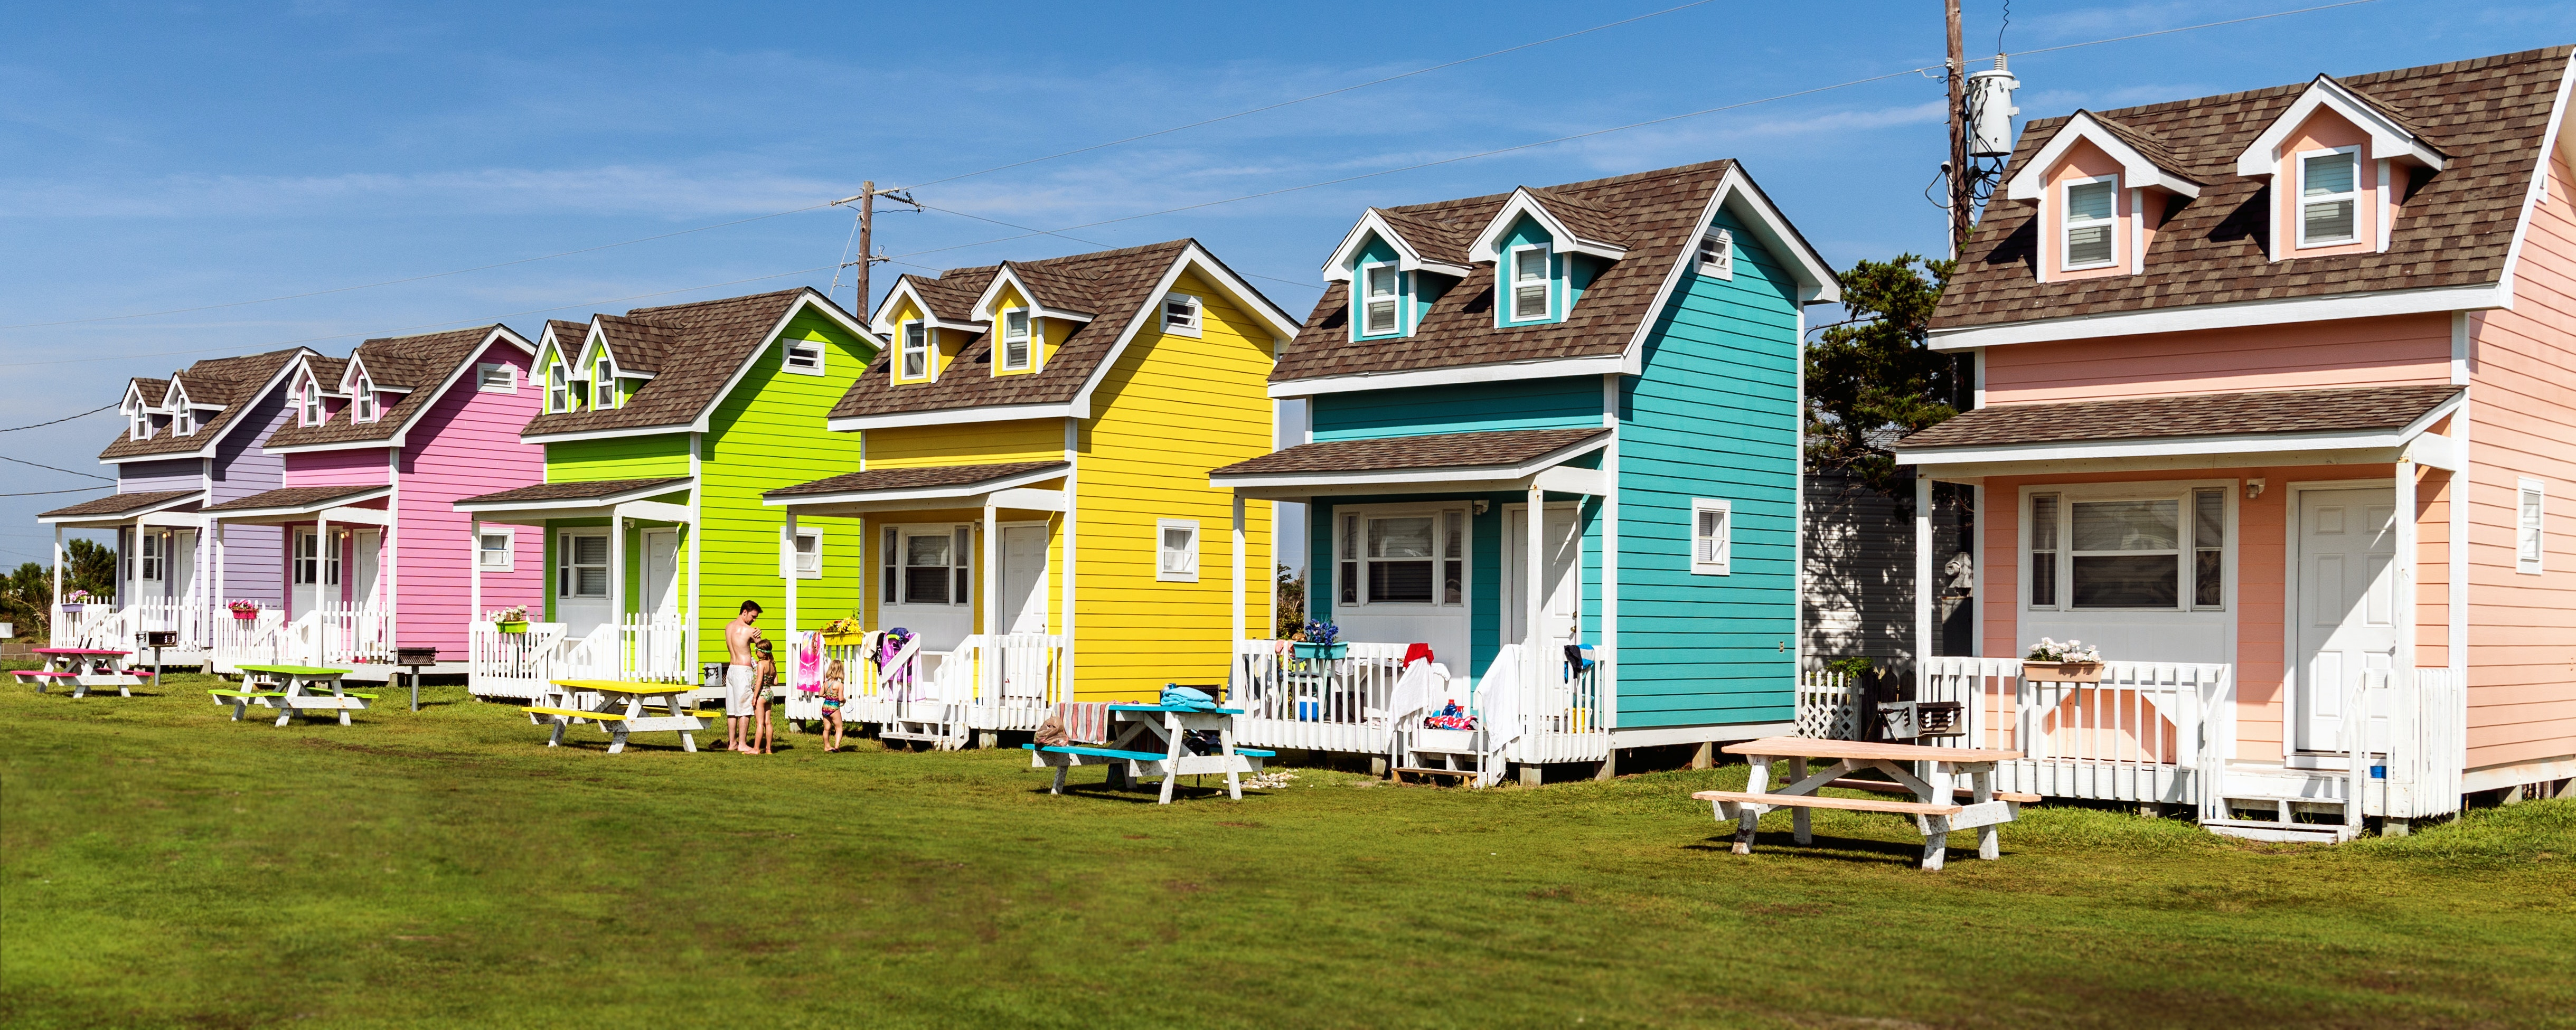 Tiny Homes Aren T For Everyone